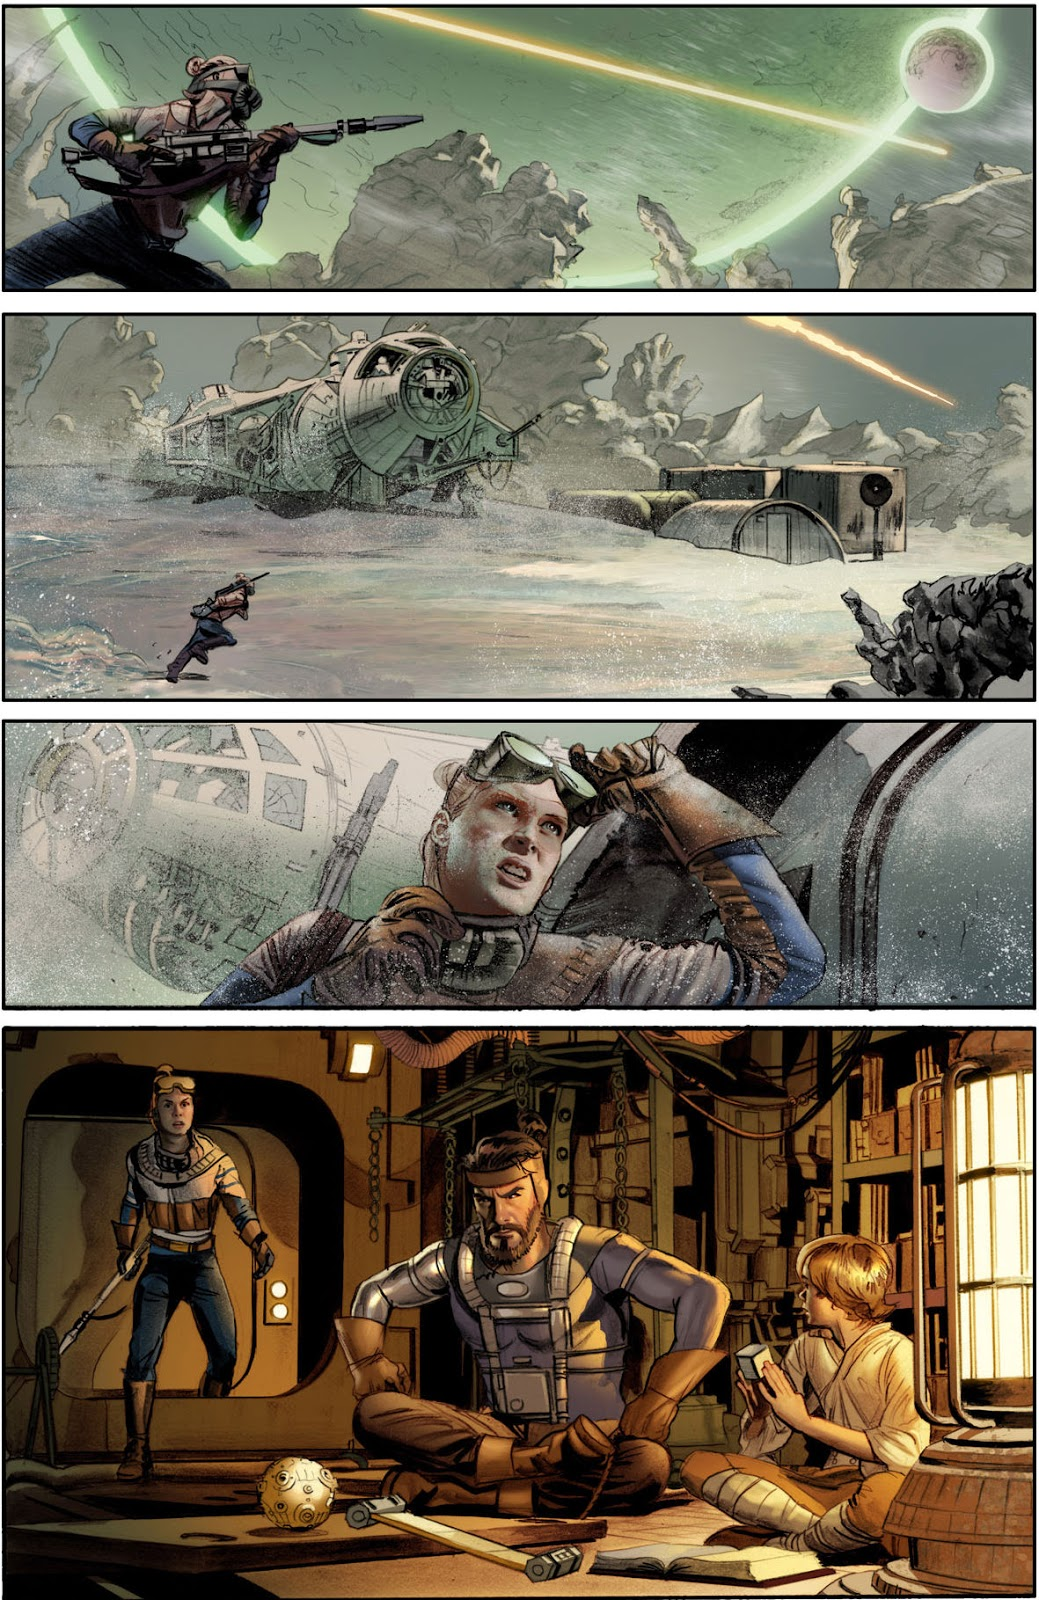 The Star Wars. Dark Horse Comic. George Lucas' Unseen Original Script For 'Star Wars' Adapted Into Comics